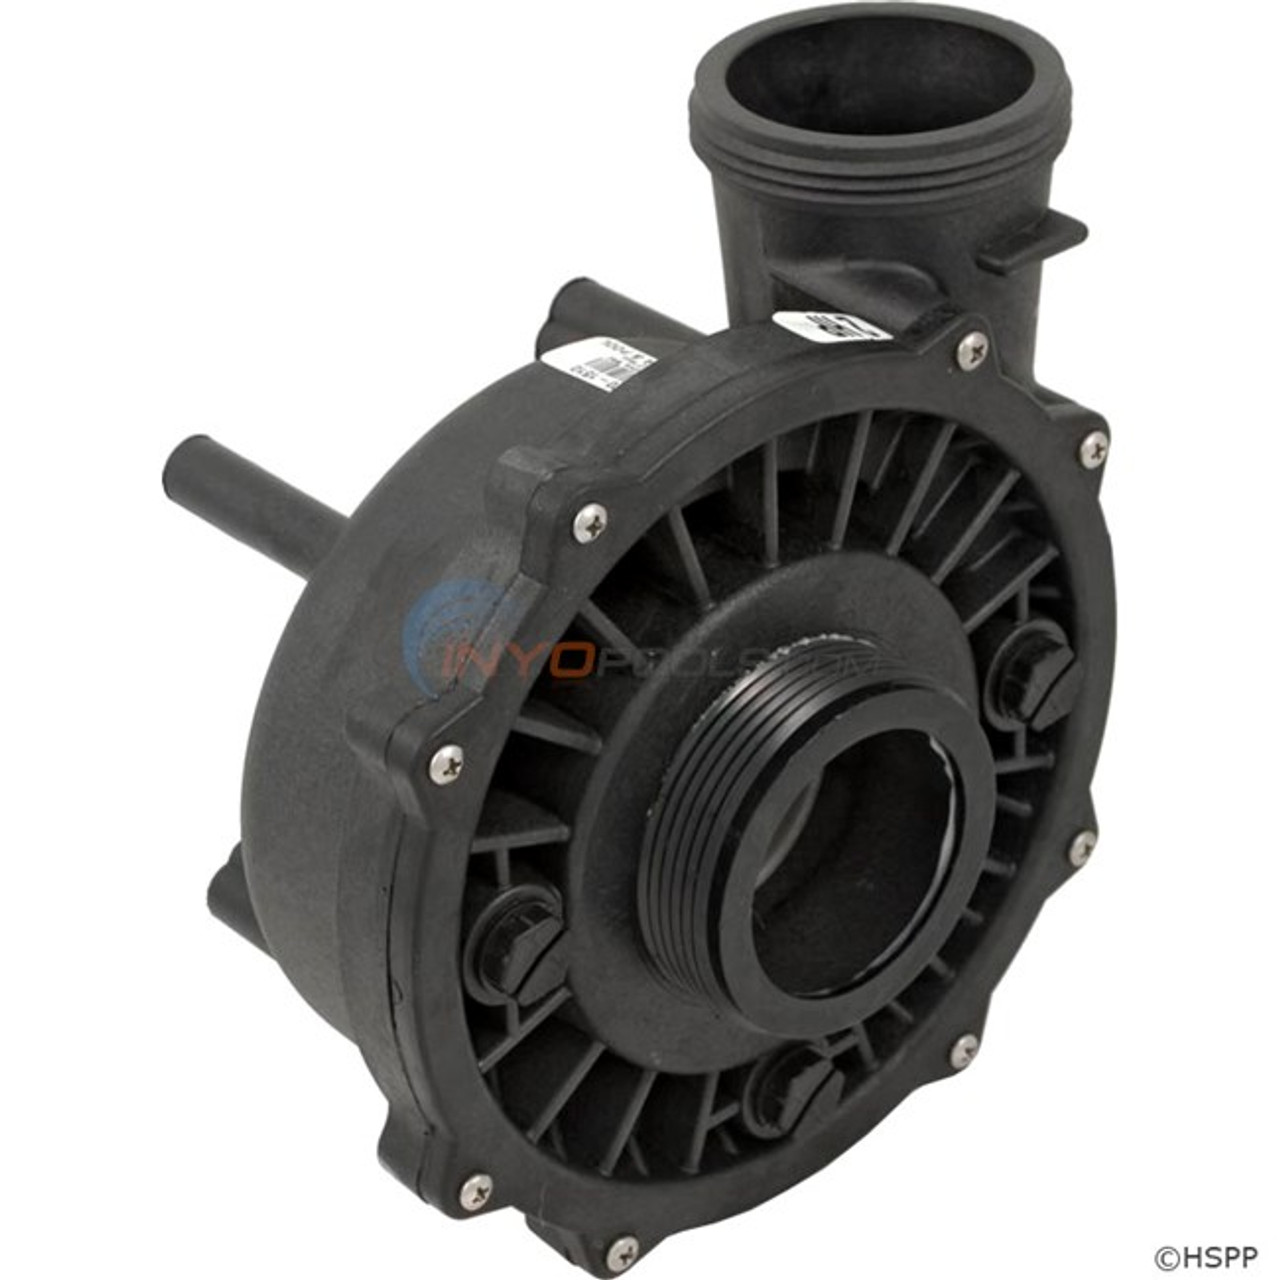 "Waterway, Executive, Wet, End, 2.5"", 56, Frame, 1, 1.5hp, 2hp, 3hp, 4hp, 4.5hp, 5hp, 310-1460, 310-1480, 310-1500, 310-1440, 310-1510, Pump, hot, tub, spa"